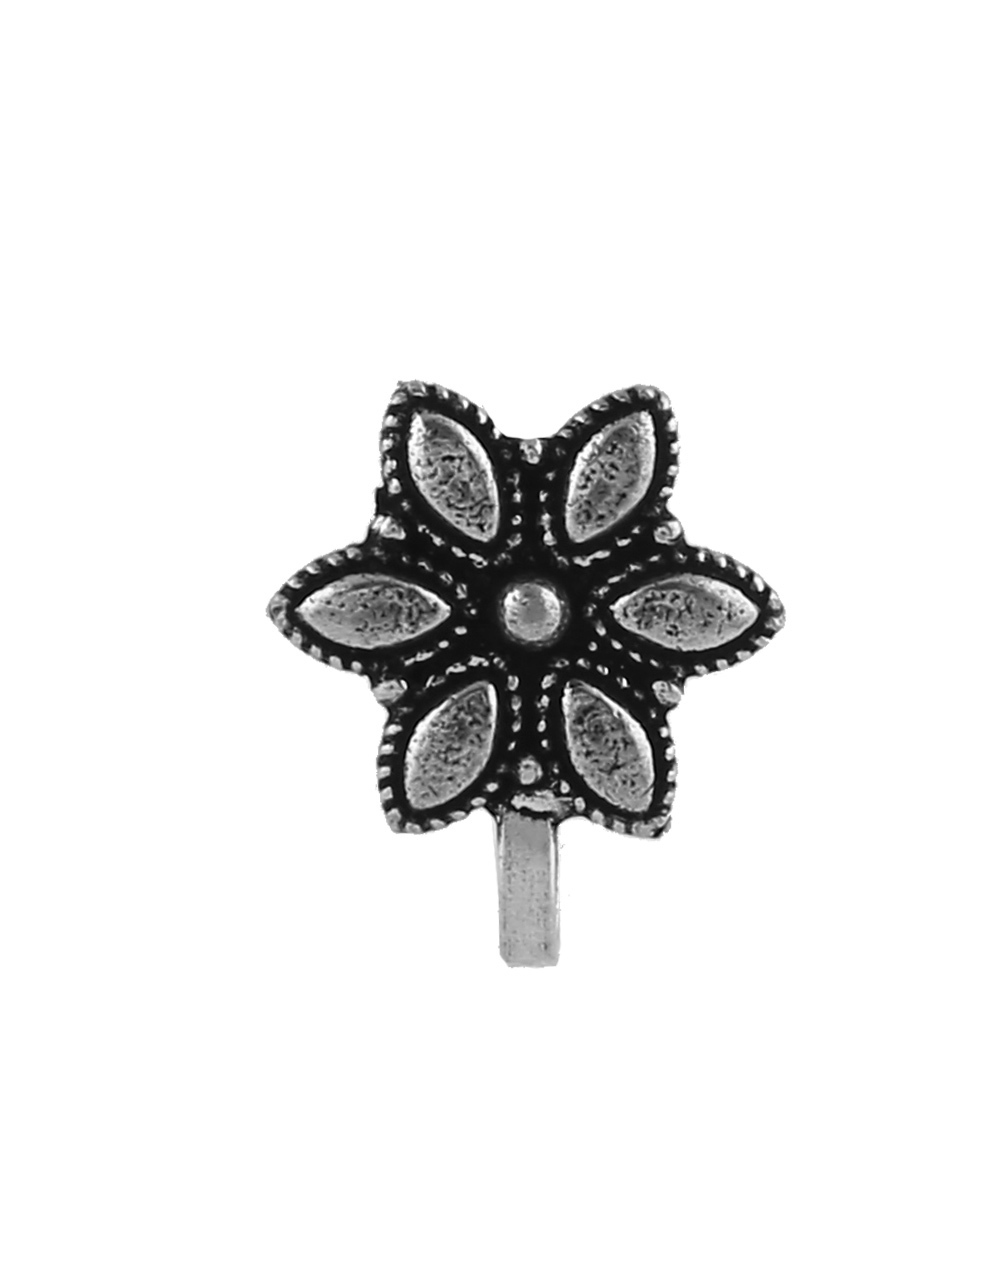 Floral Design Oxidised Finish Nose Stud Ring